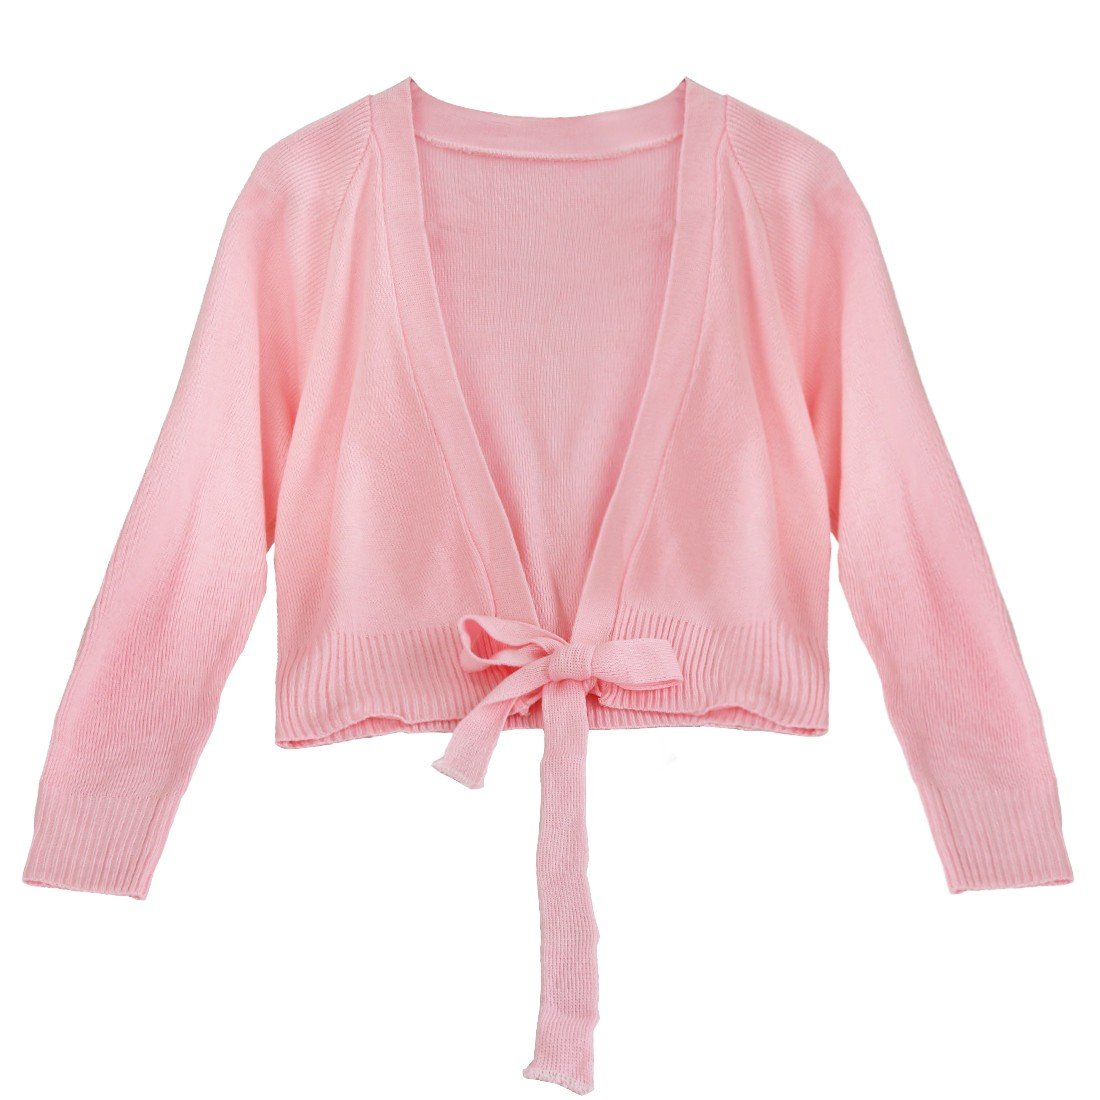 iEFiEL Kids Girls Long Sleeves Front Tie Knot Shrug Stretchy Cardigan Top Pink 5-6